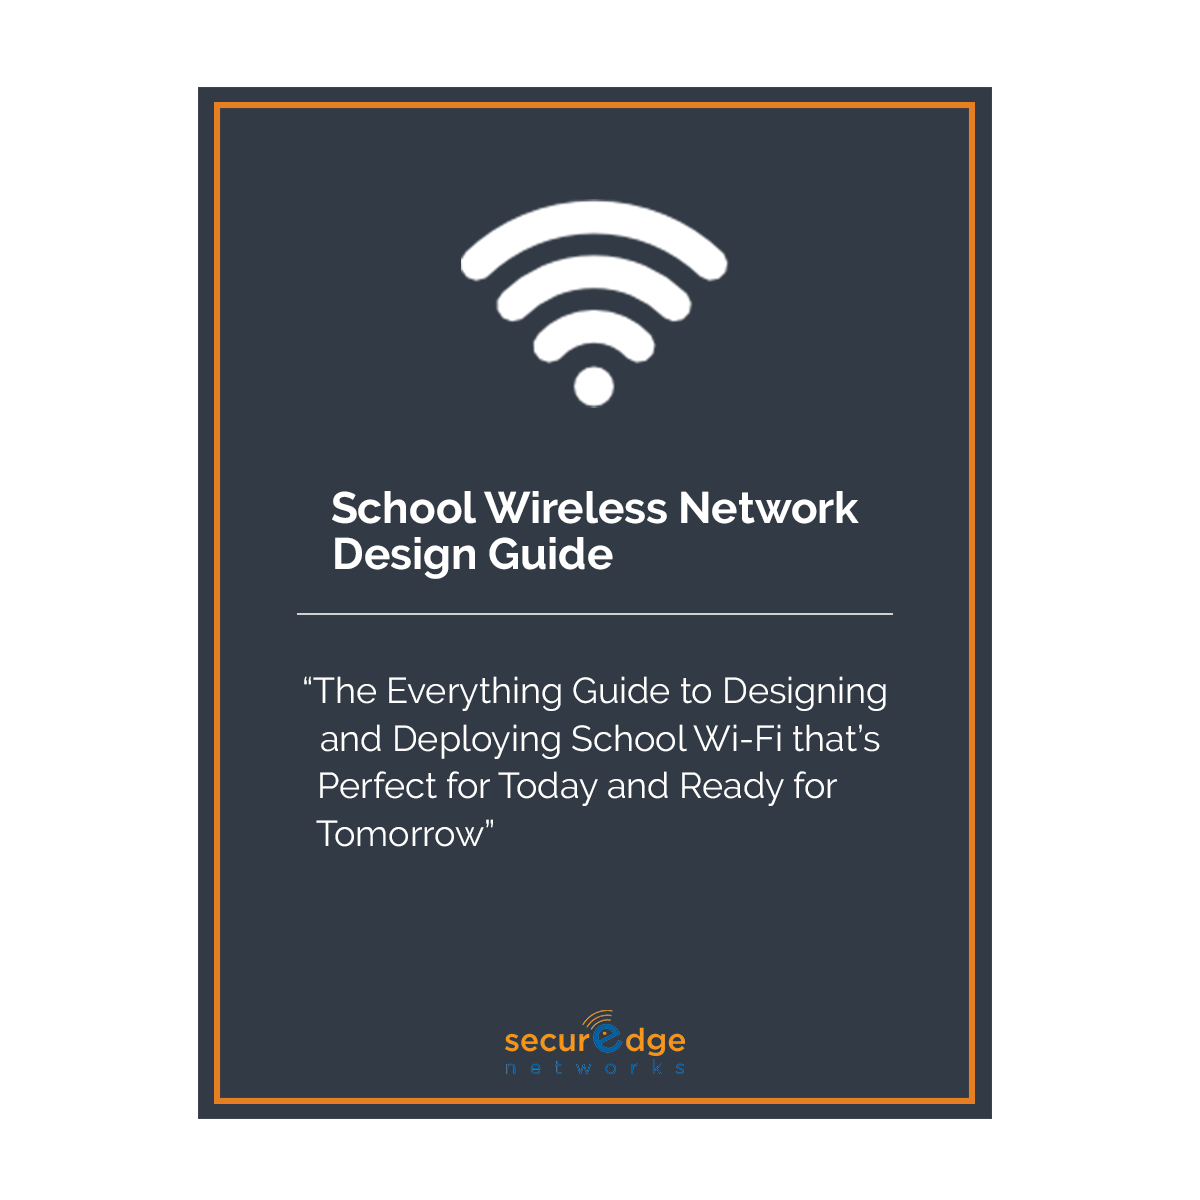 school wireless network design guide